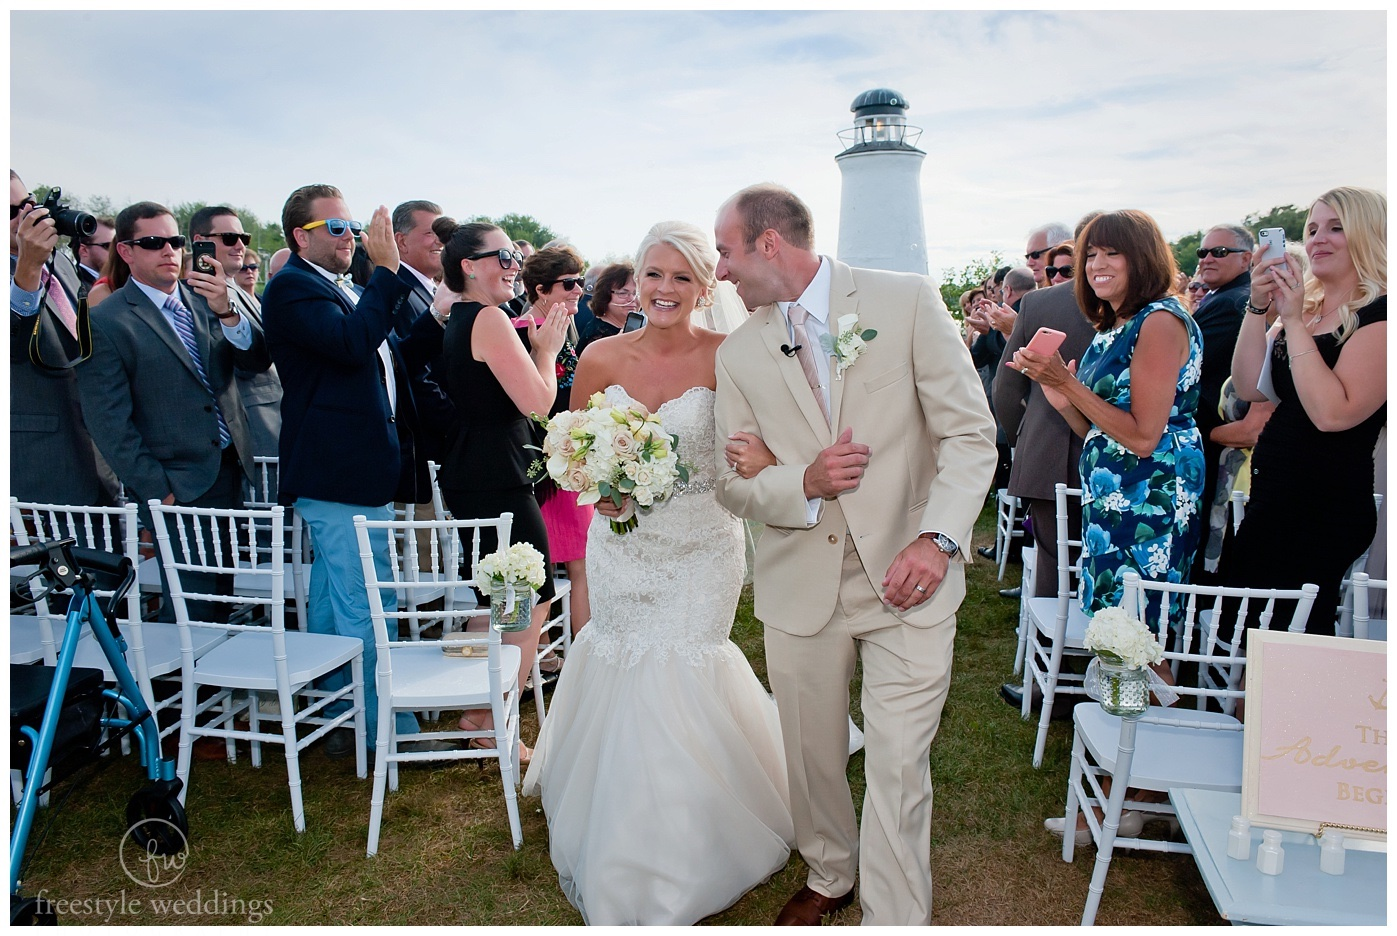 Nonantum Resort wedding in Kennebunkport photographed by freestyle weddings